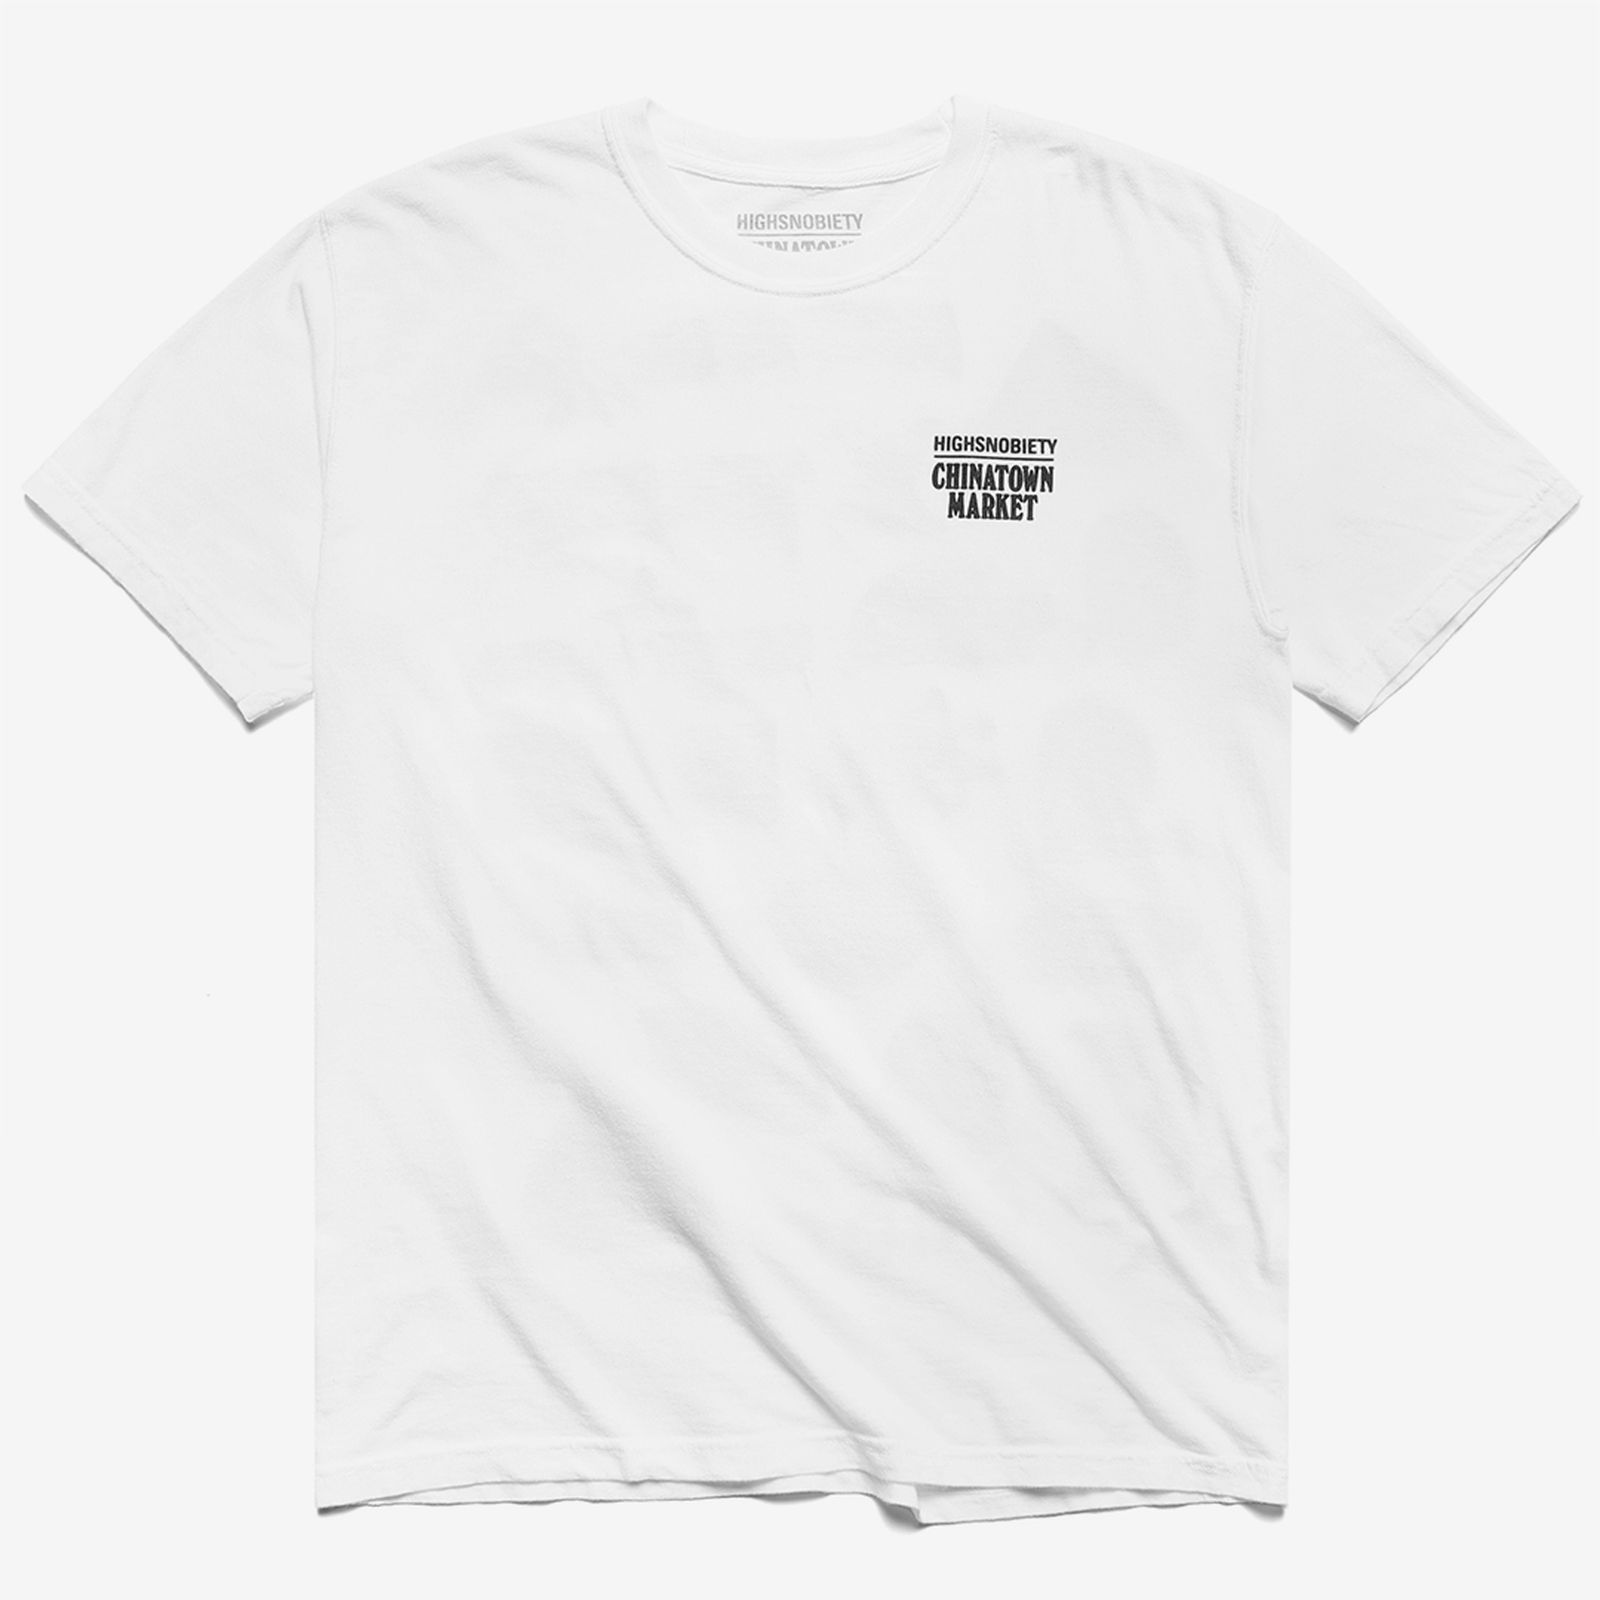 highsnobiety chinatown market tee collab The Incomplete Highsnobiety Guide to Street Fashion and Culture